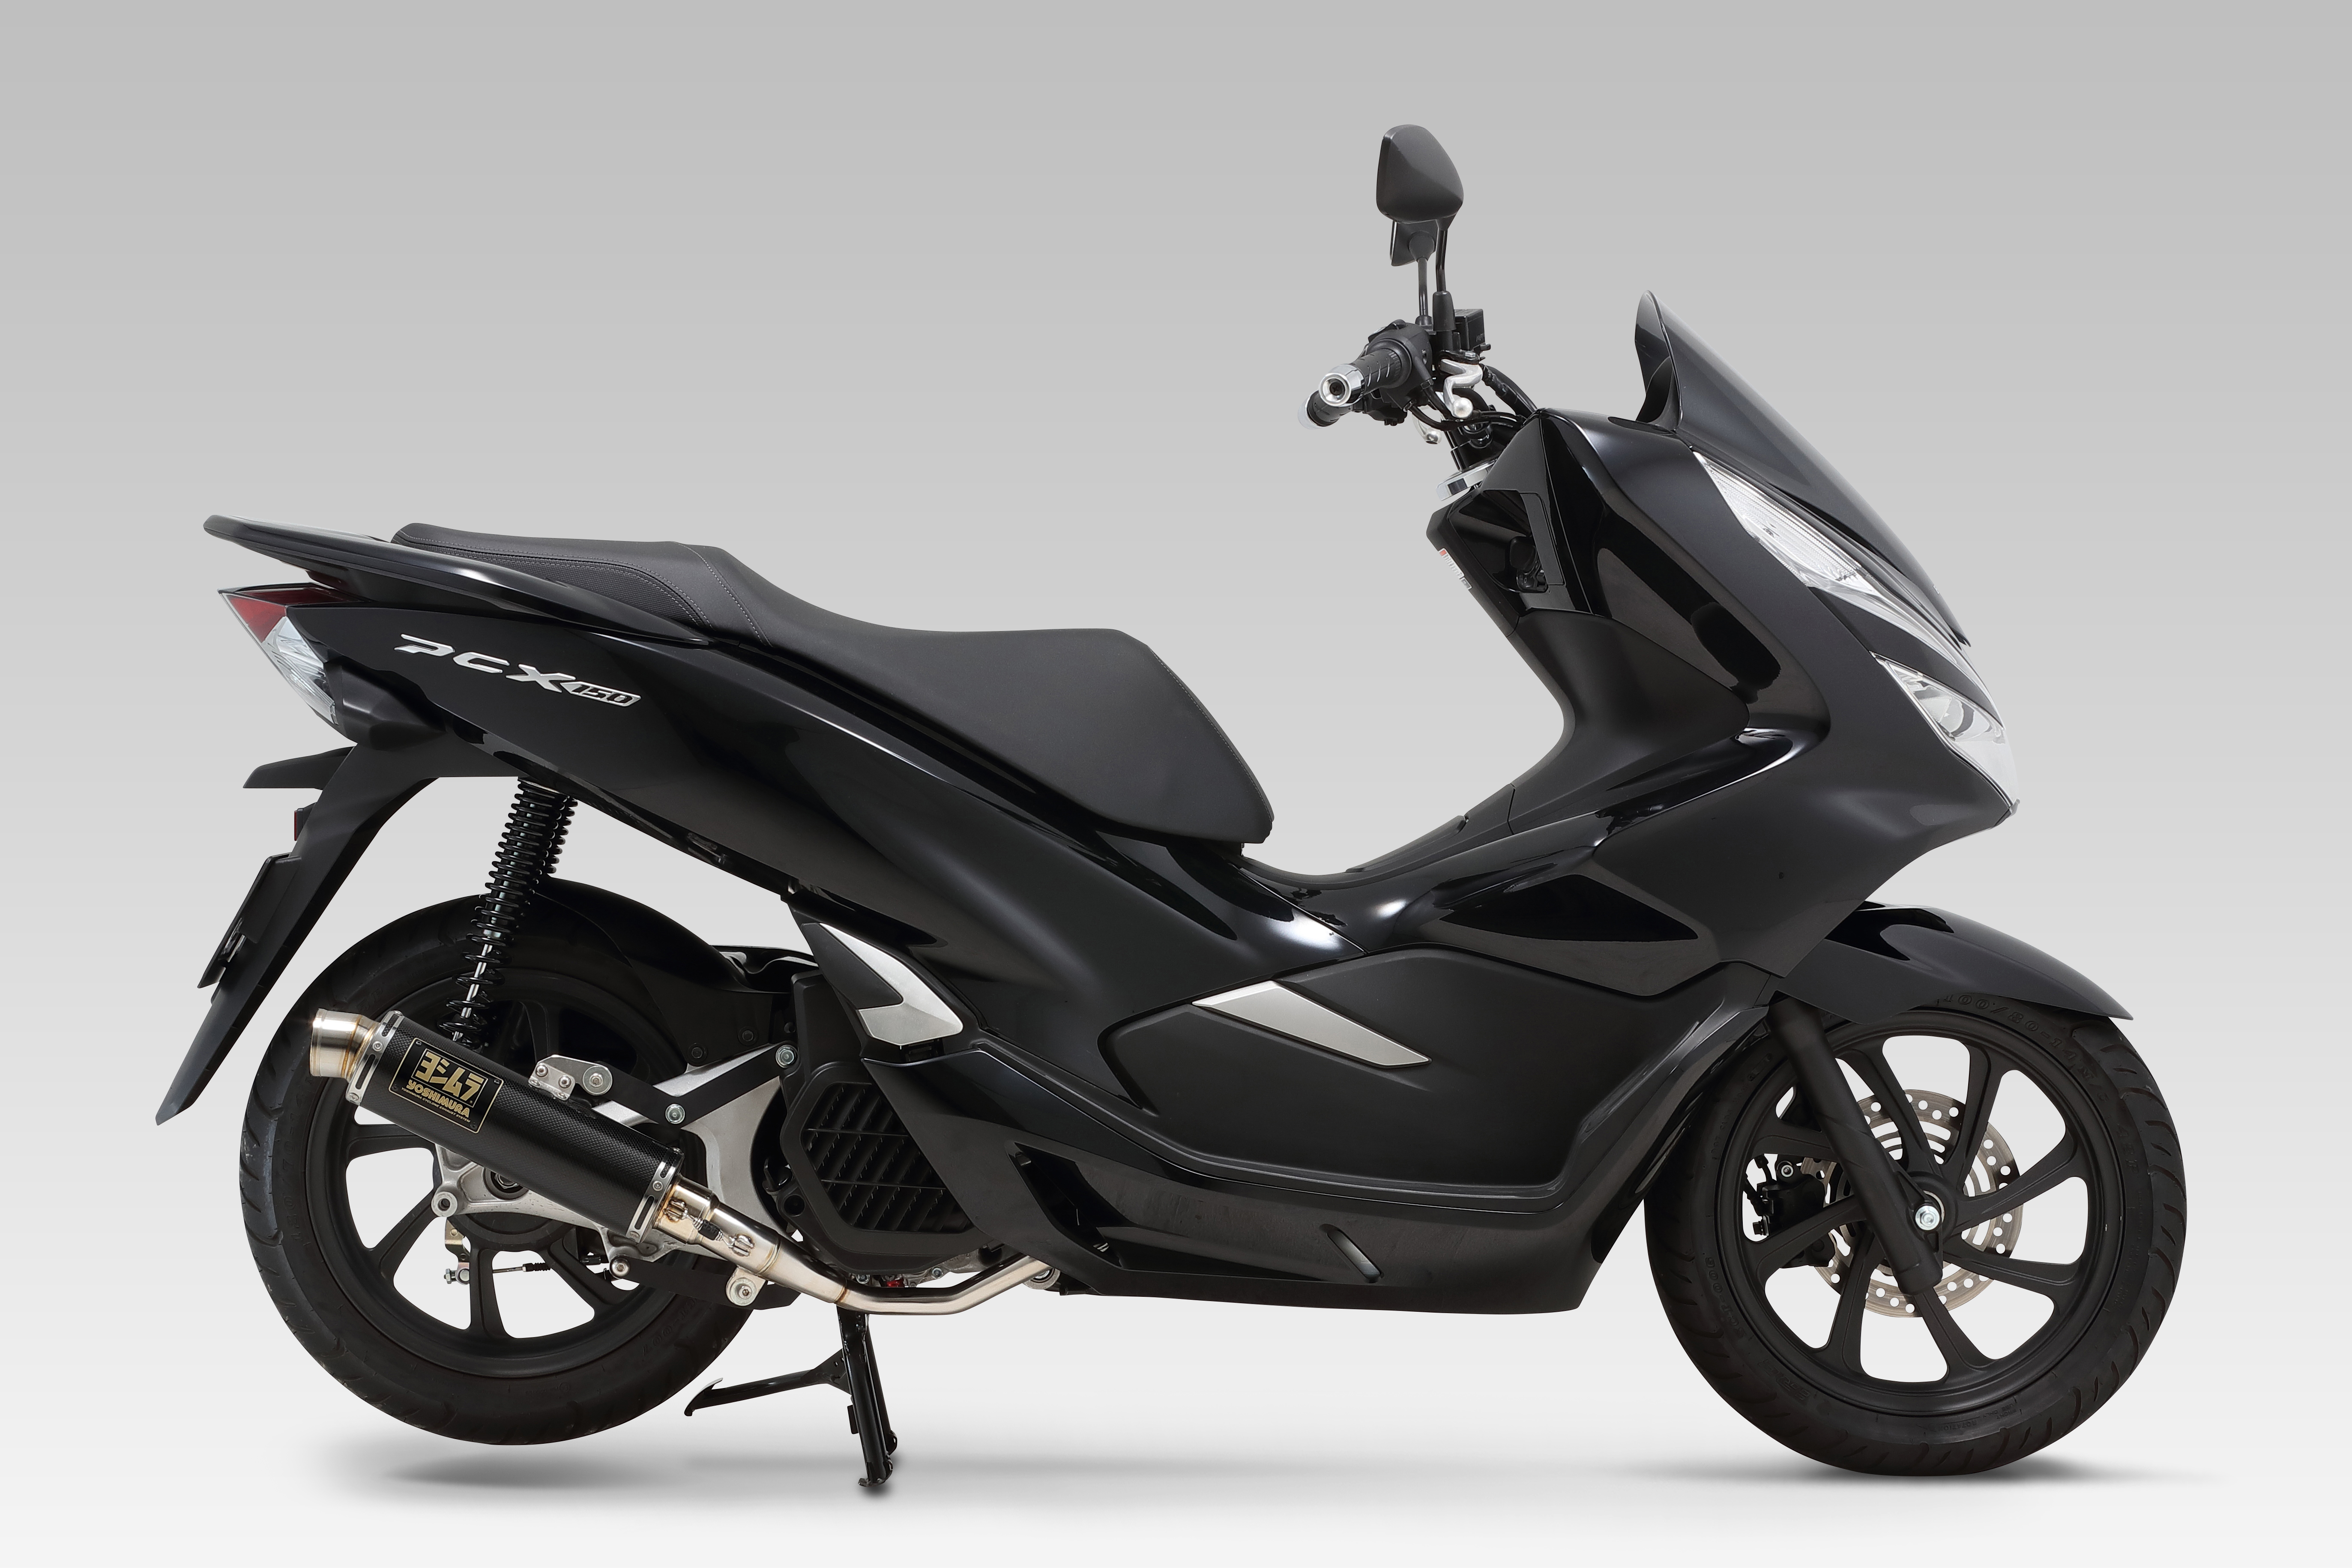 【Yoshimura Asia】Hệ thống ống xả GP Magnum TIS Certified - Webike Thailand